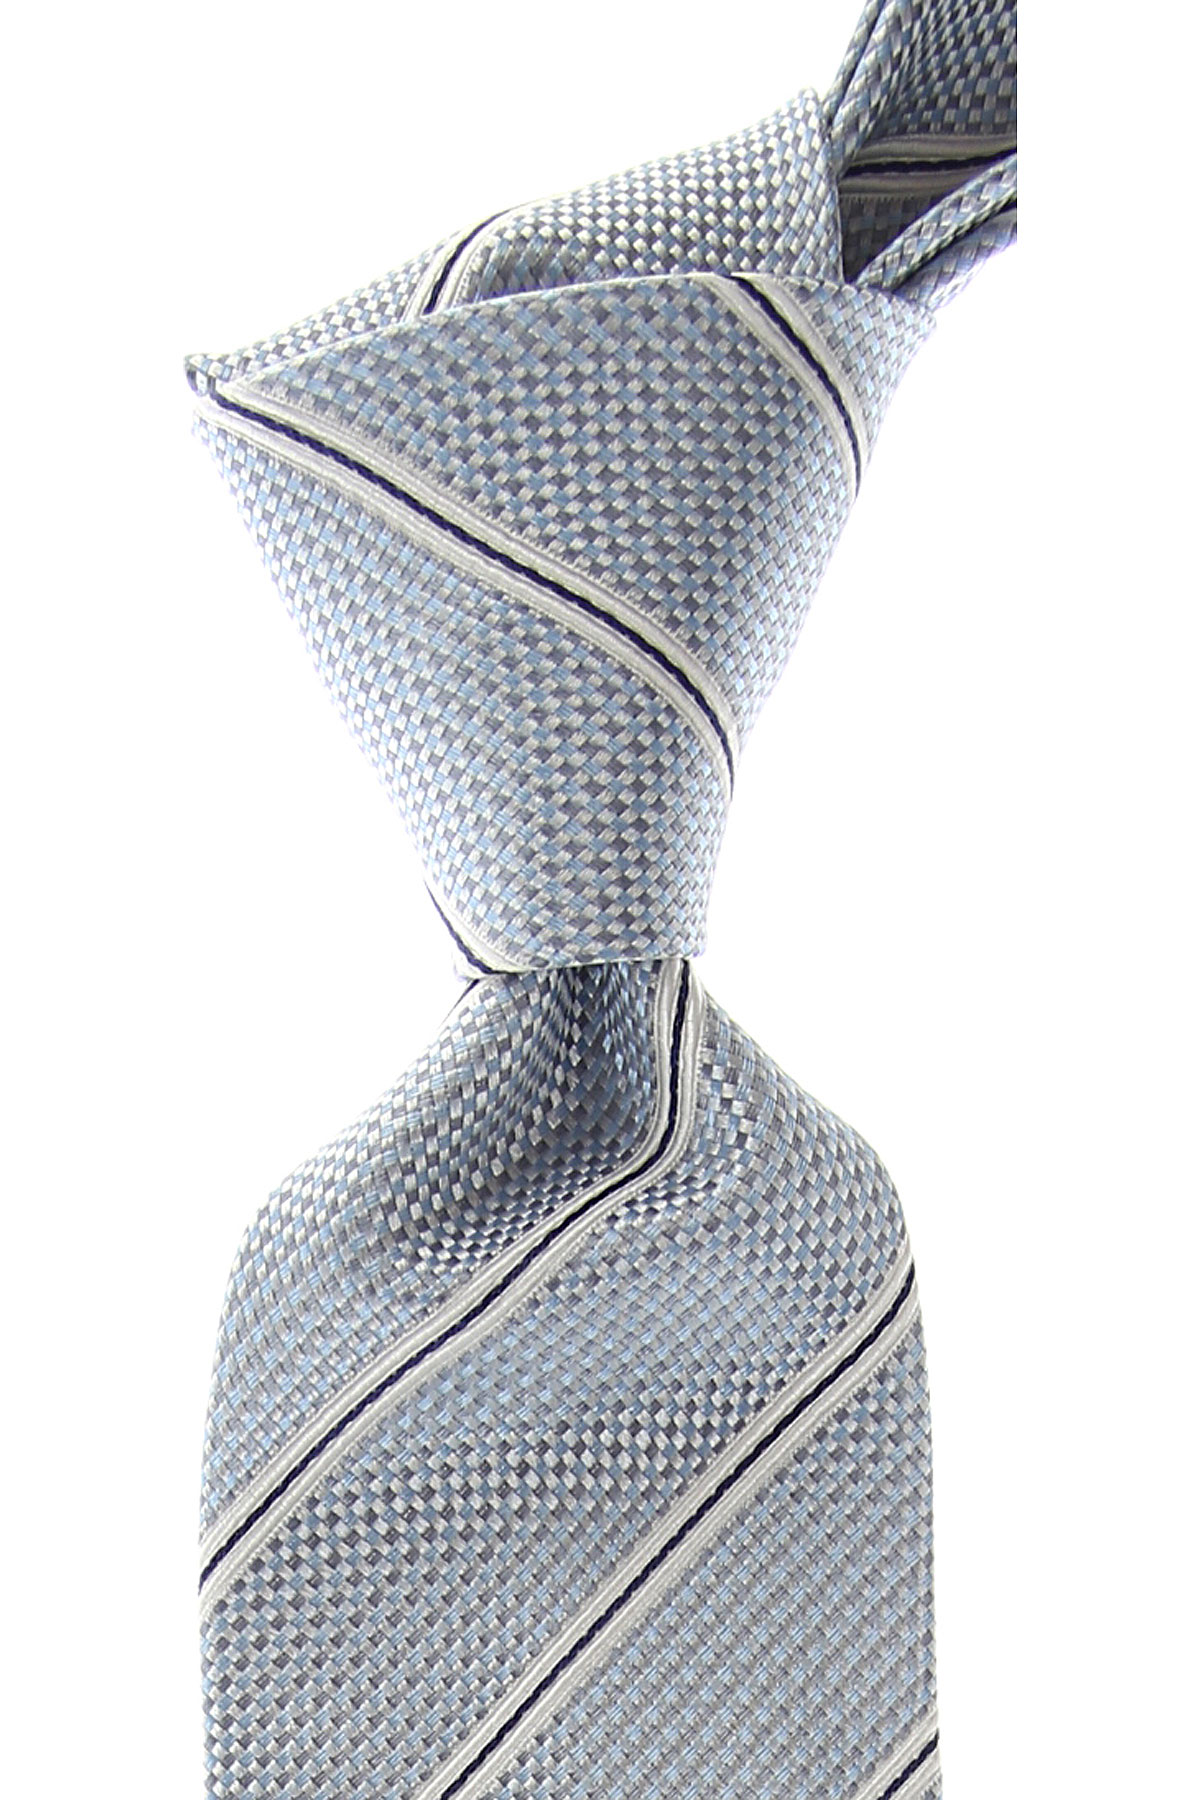 Giorgio_Armani_Ties_On_Sale_Bright_Light_Blue_Silk_2019